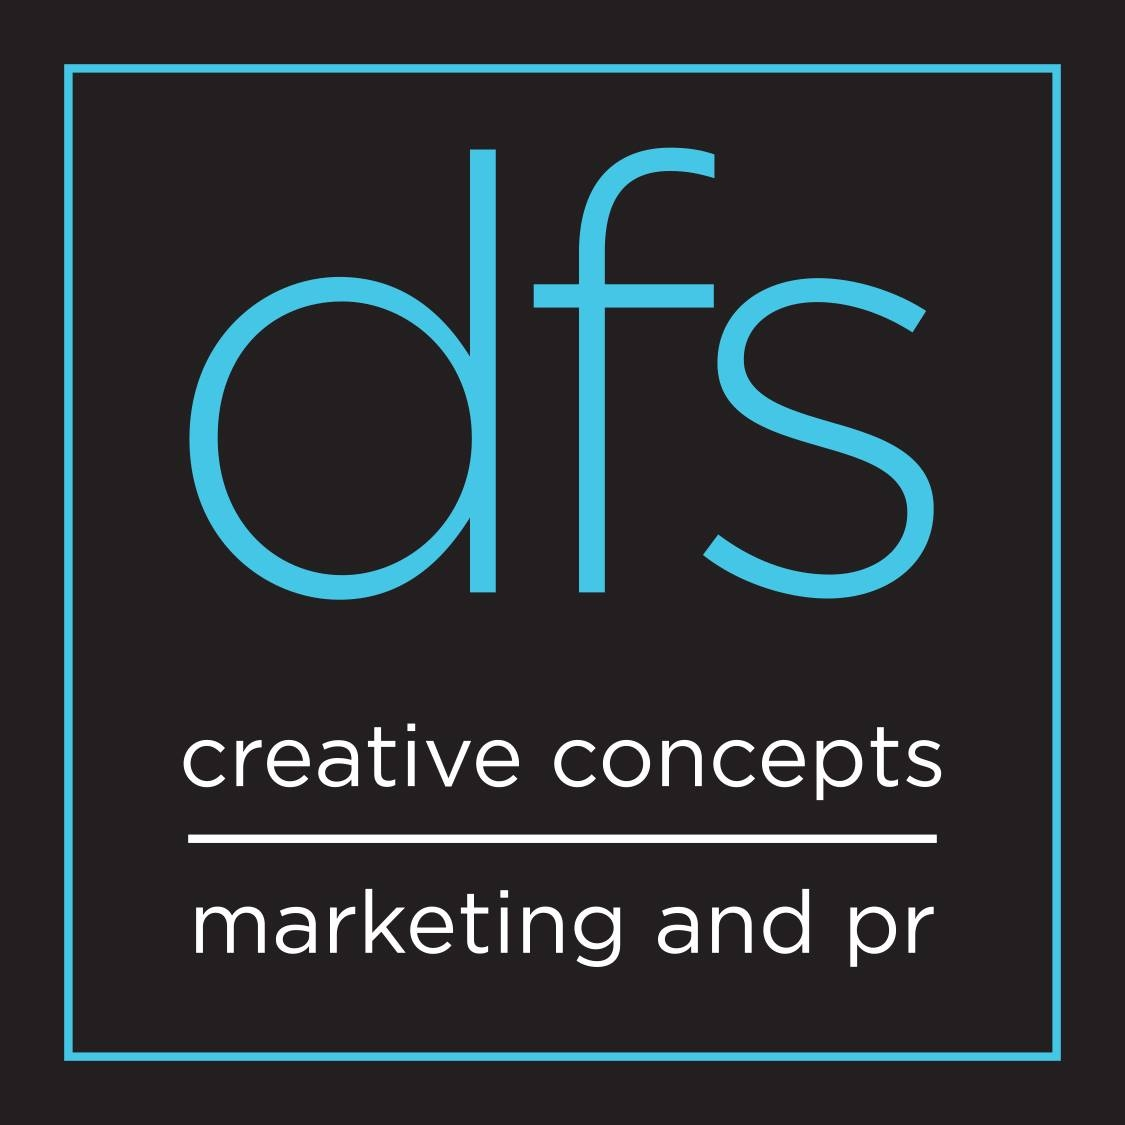 Copy of dfs creative concepts